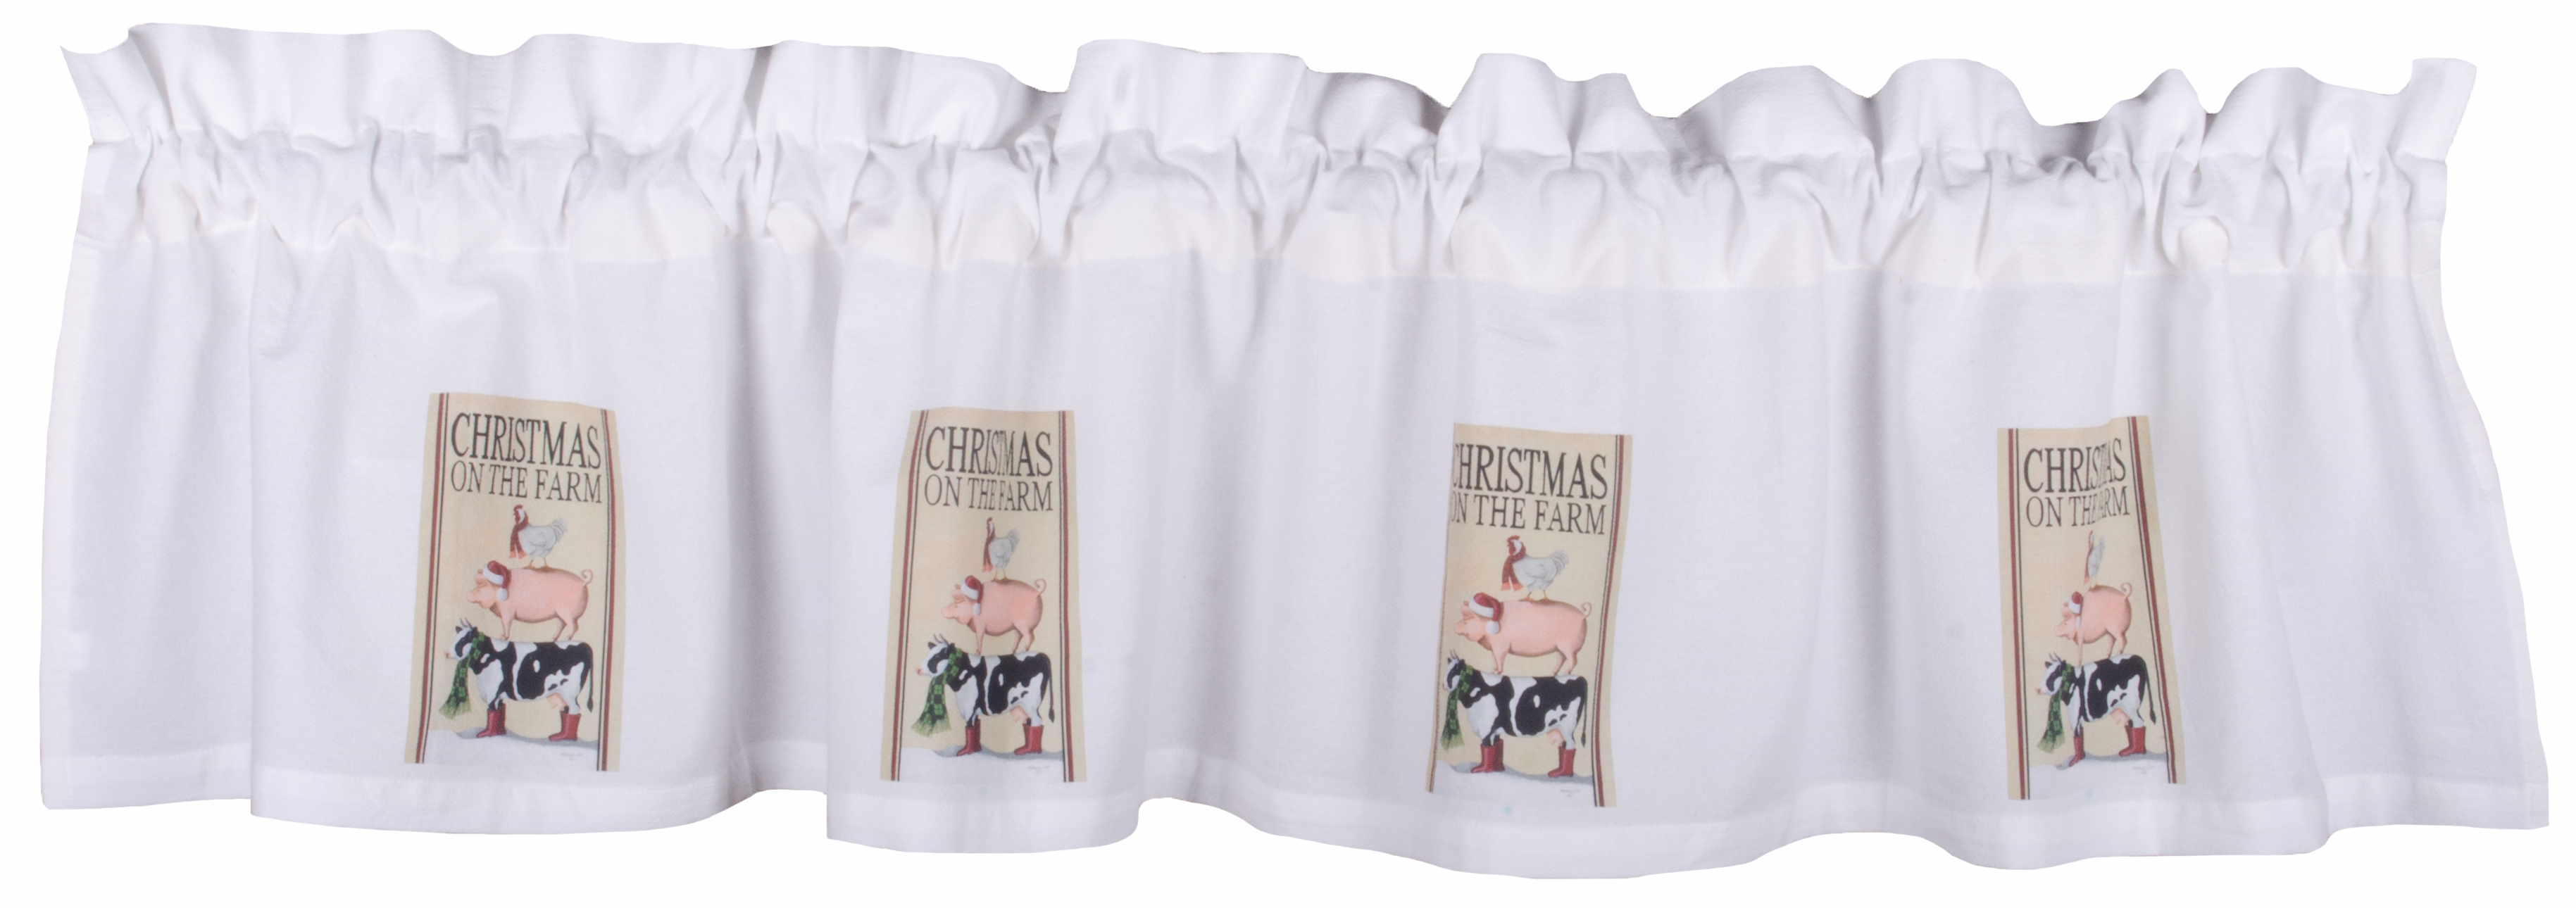 Christmas on the Farm White Valance